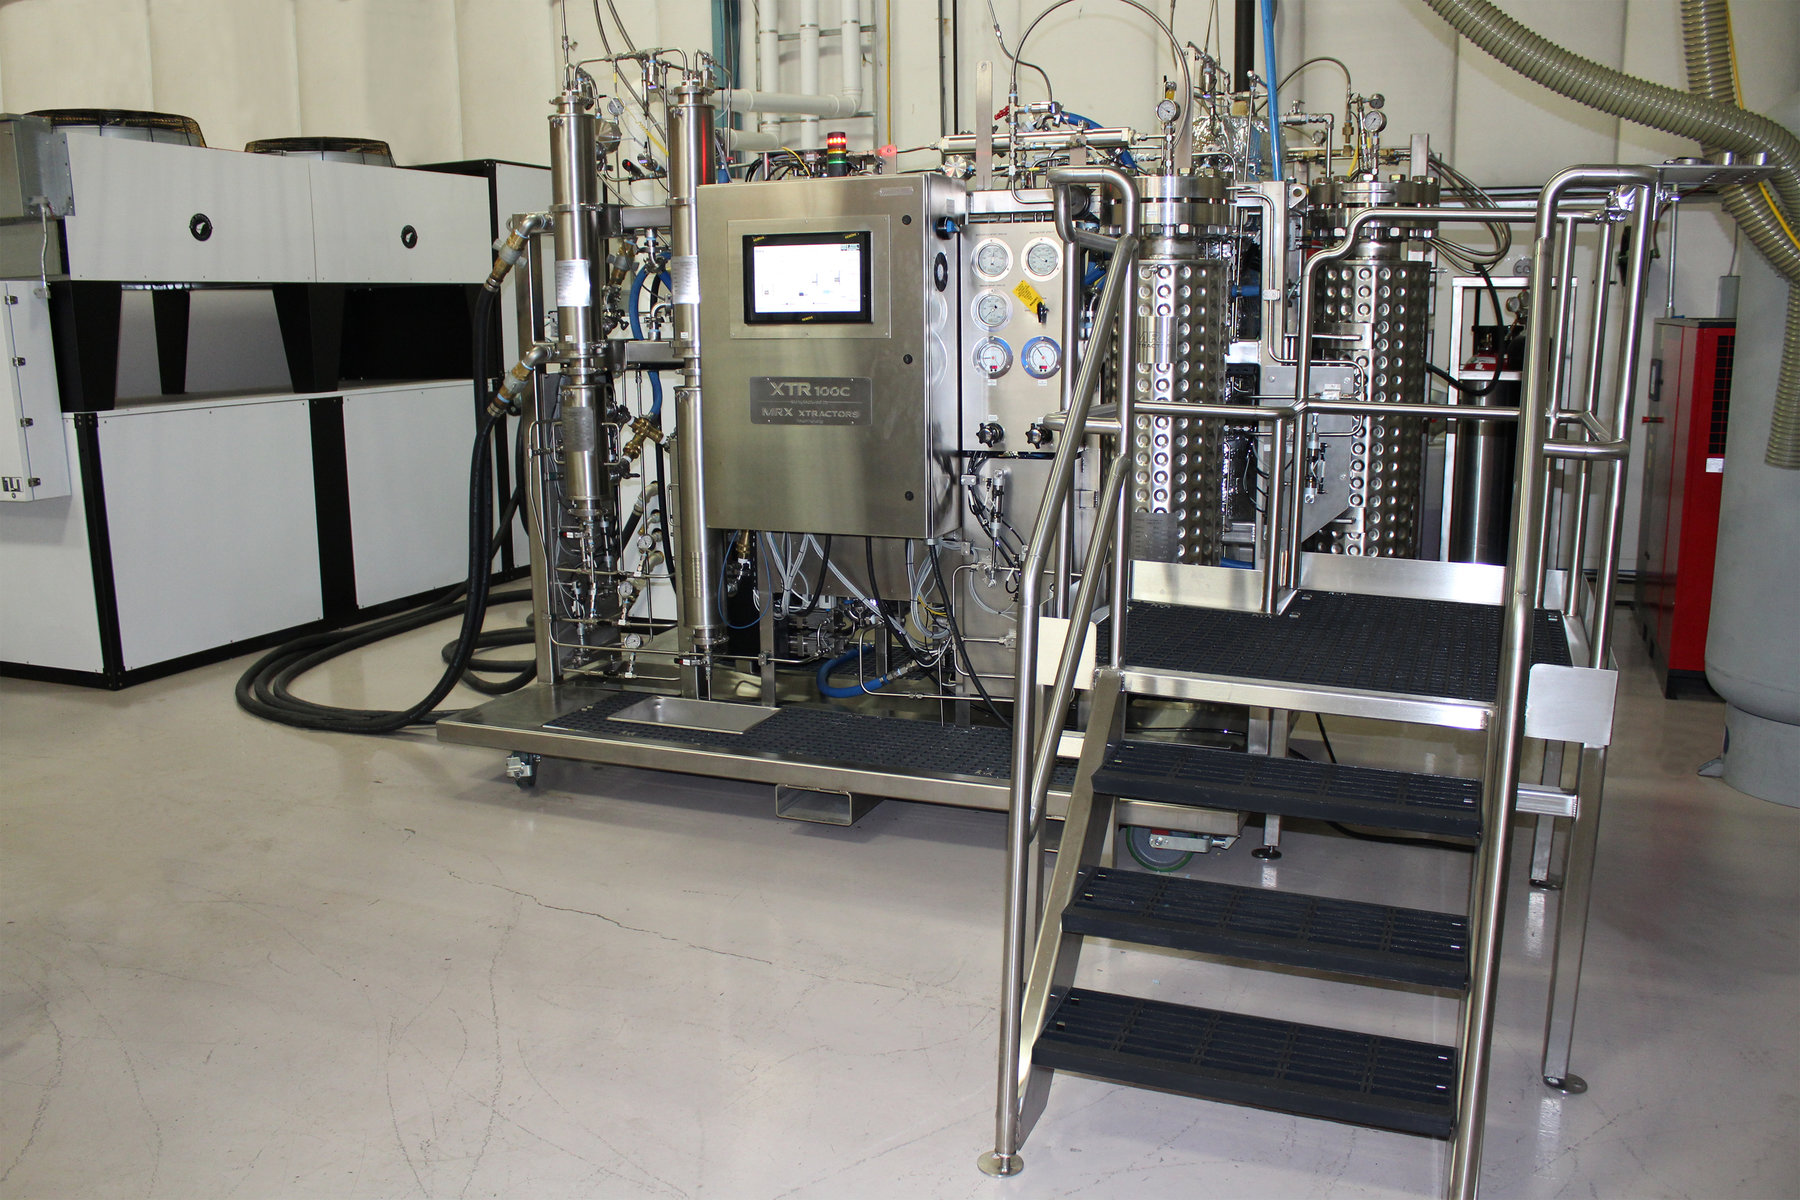 Mrx Announces Next Generation In Co2 Cannabis Extraction